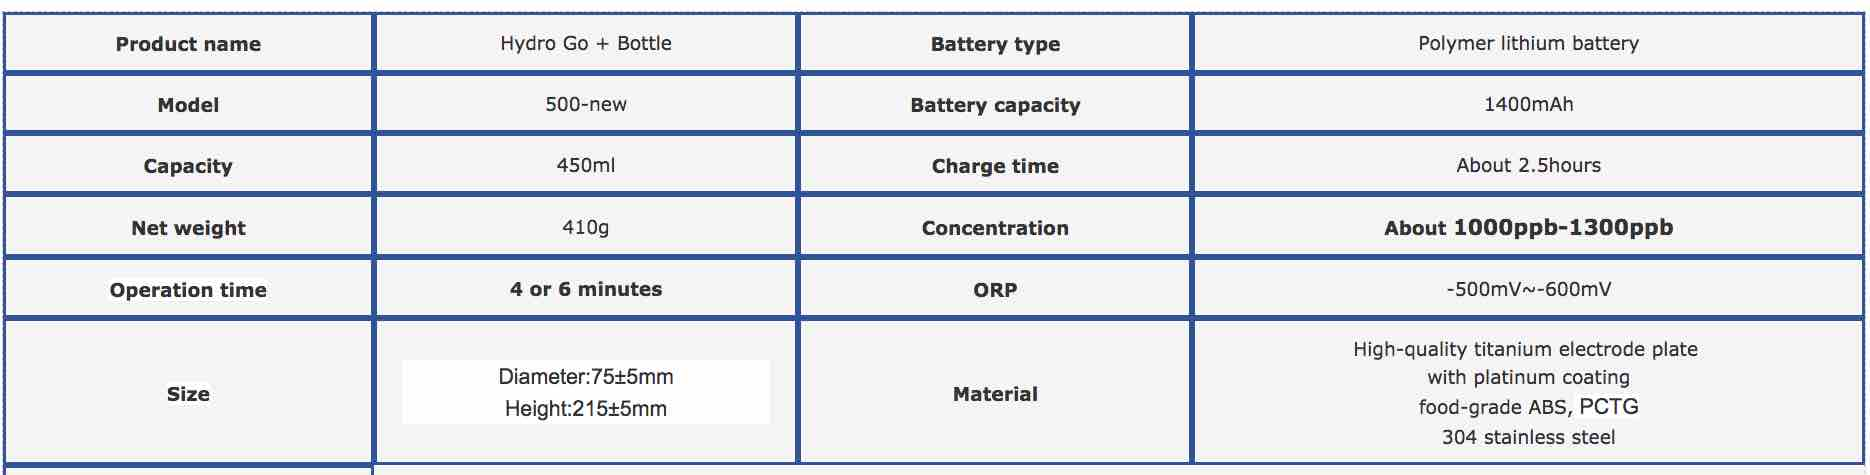 HydroGO+ Specifications